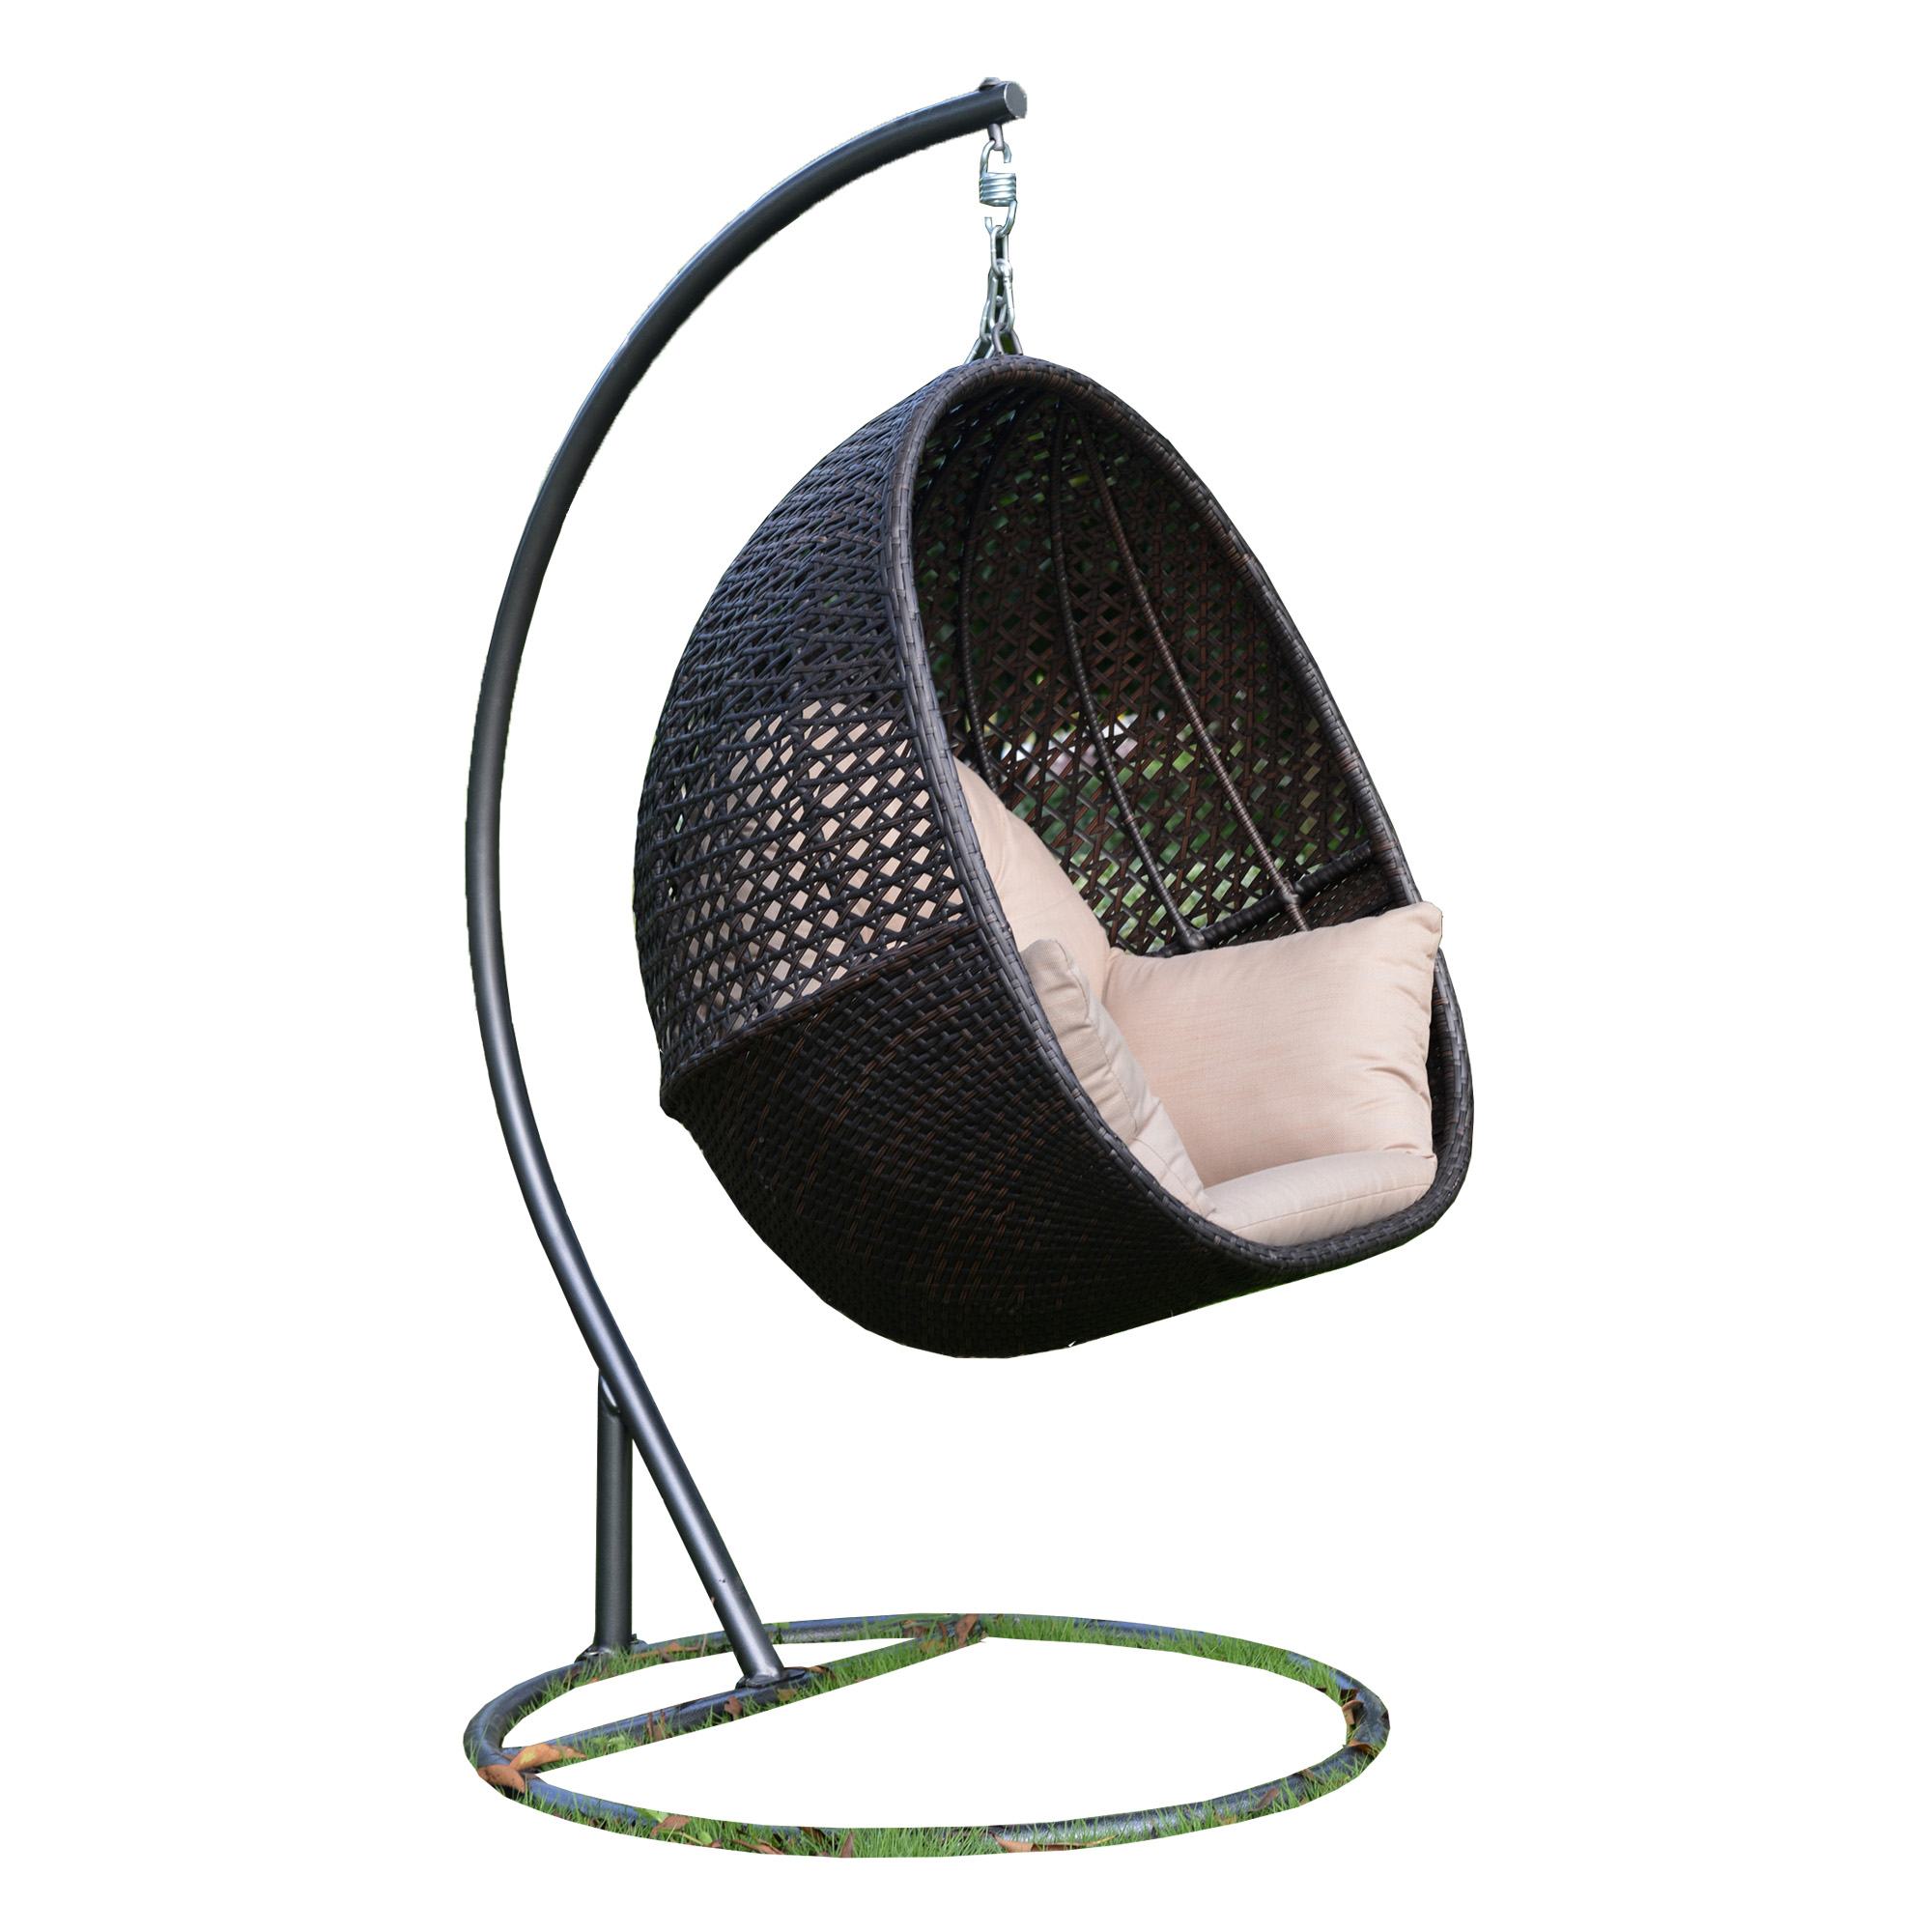 Egg Shape Indoor Outdoor Rattan Cocoon Hanging Swing Chair With Stand And Cushion Buy Rattan Swing Chair Rattan Swing Chair Rattan Swing Hanging